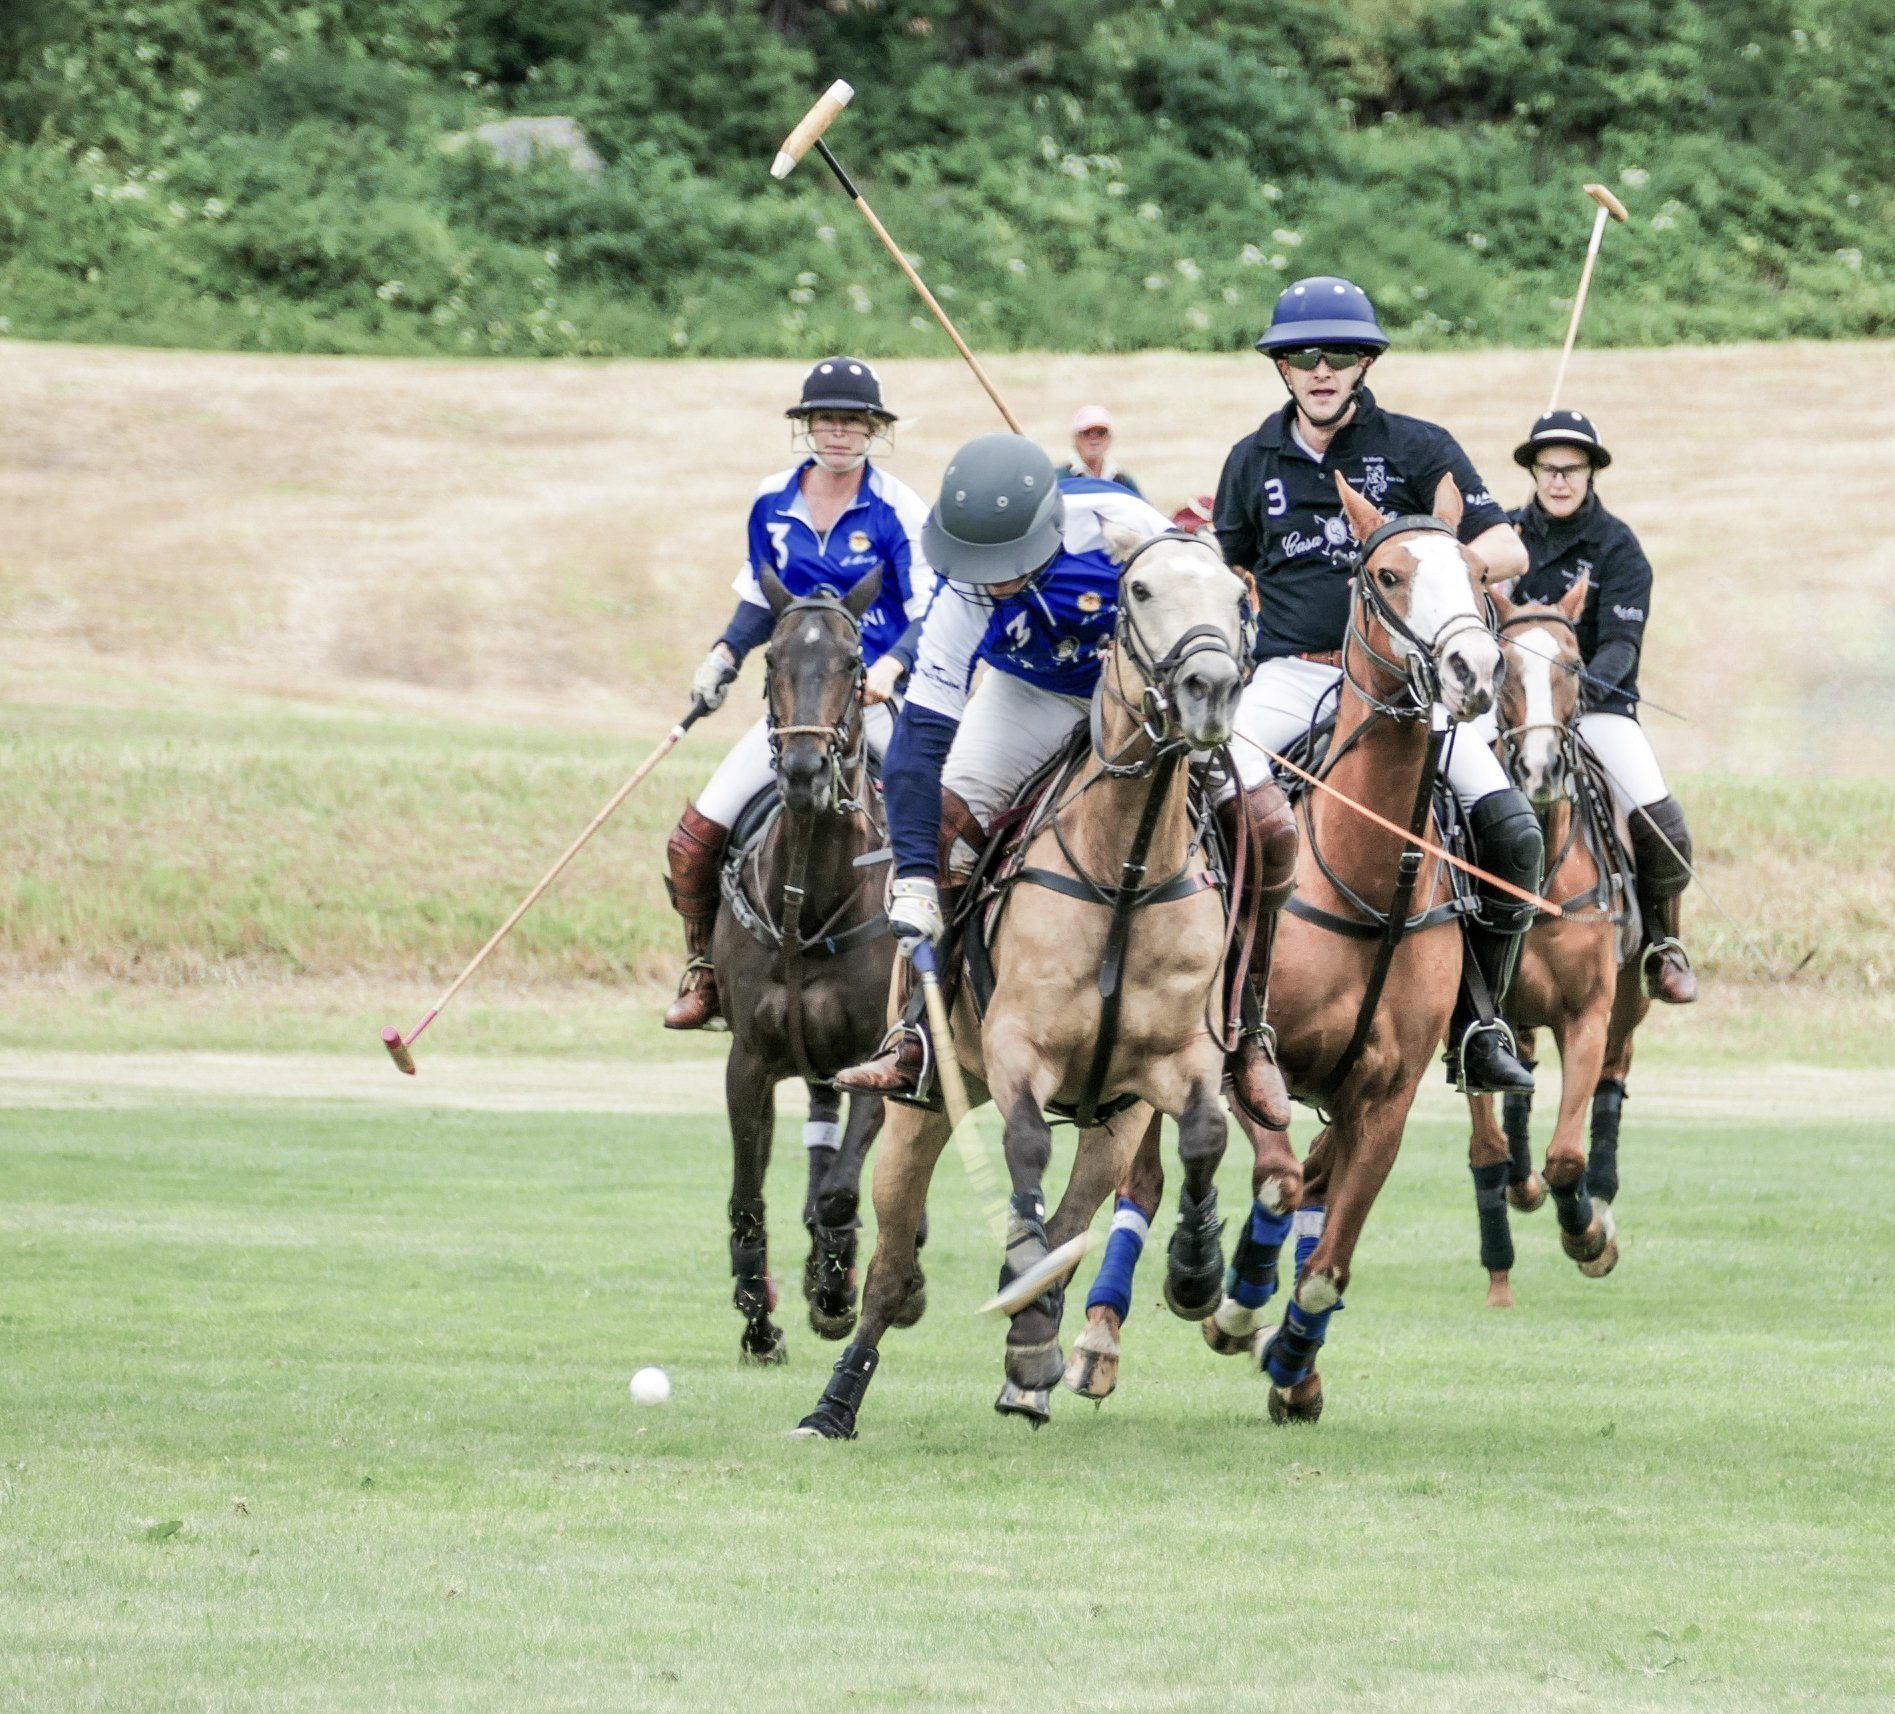 St. Moritz Sommer Polo Cup